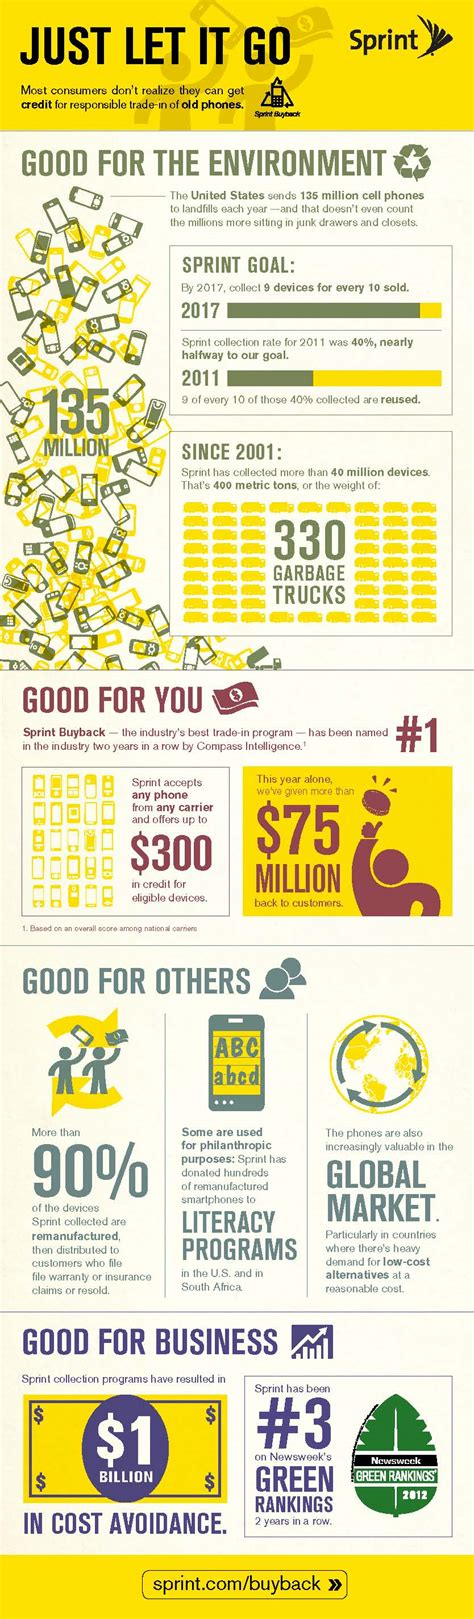 mobile phone recycling infographic the impact of cell phone recycling via